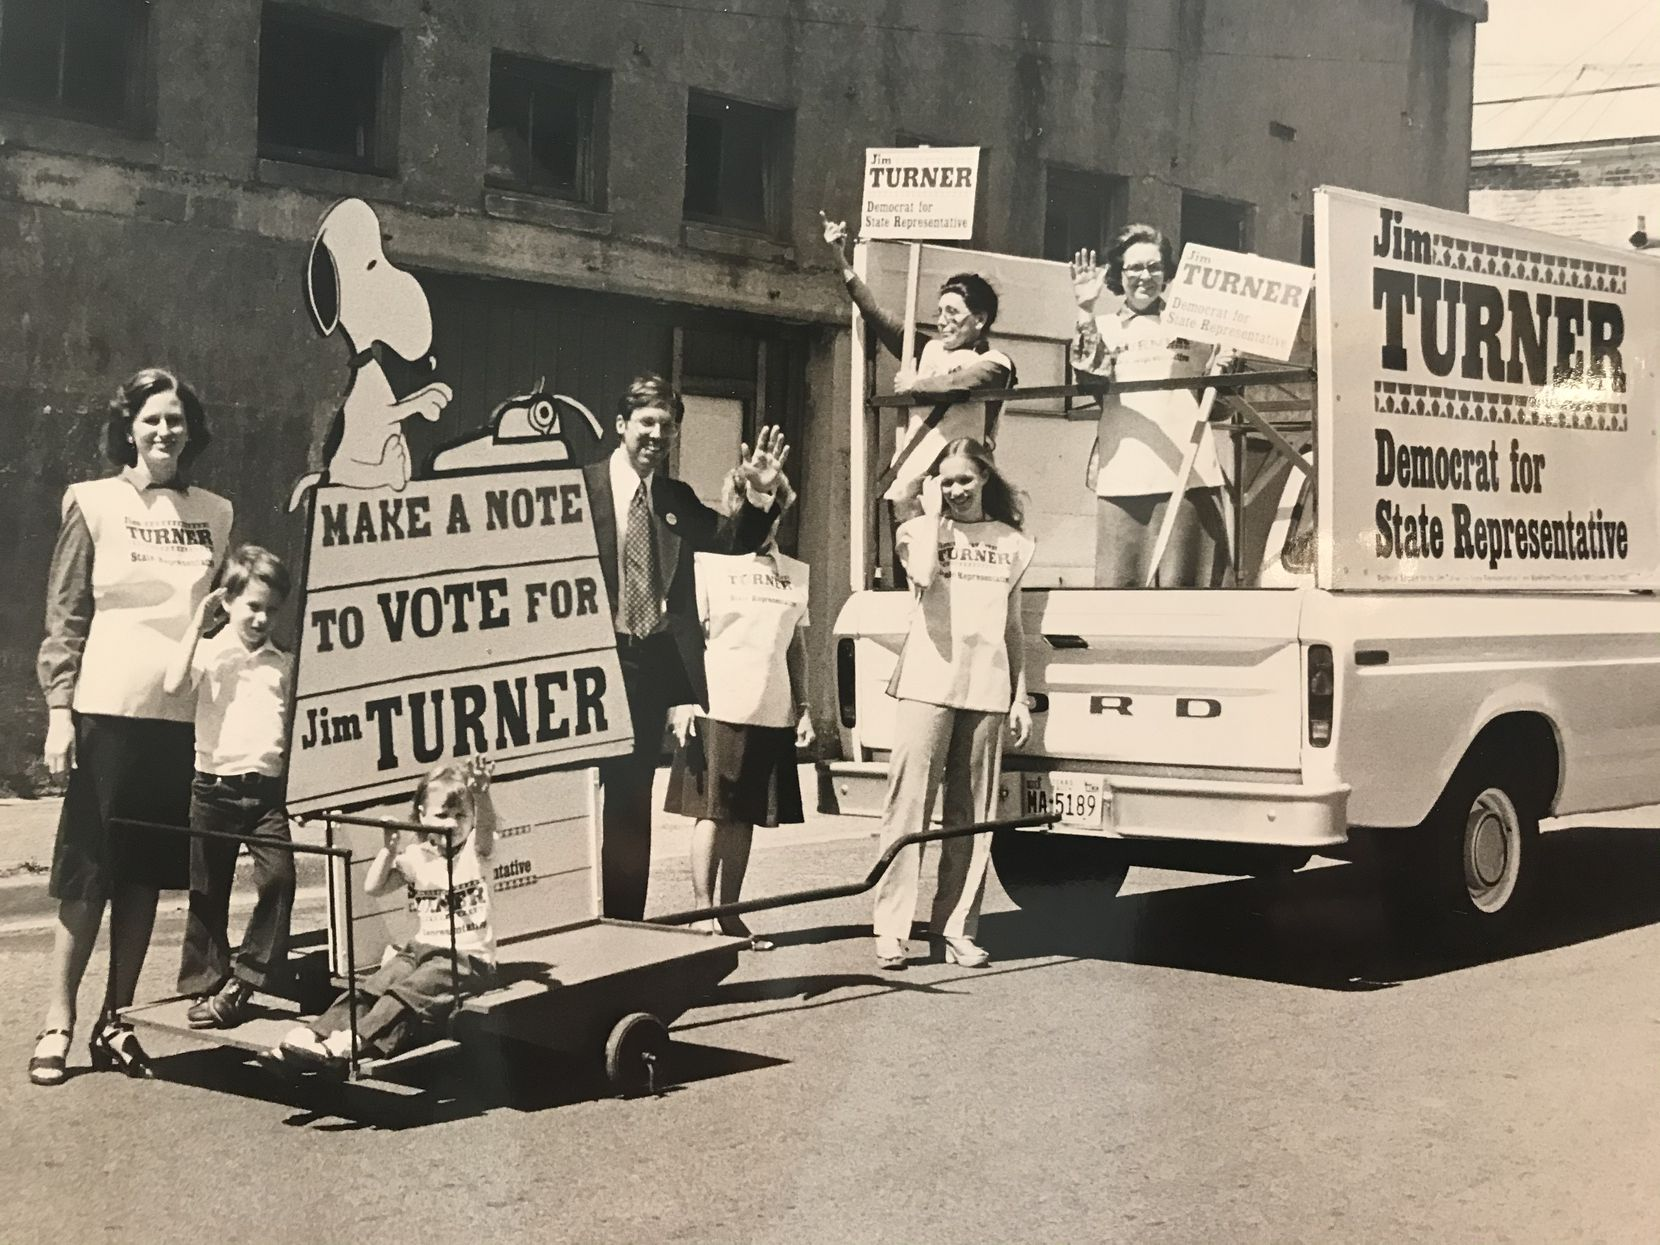 A young John Turner (left) rides a float pushing support for his father's campaign for state representative. Turner is surrounded by his mother, Ginny; sister Susan; and father Jim.